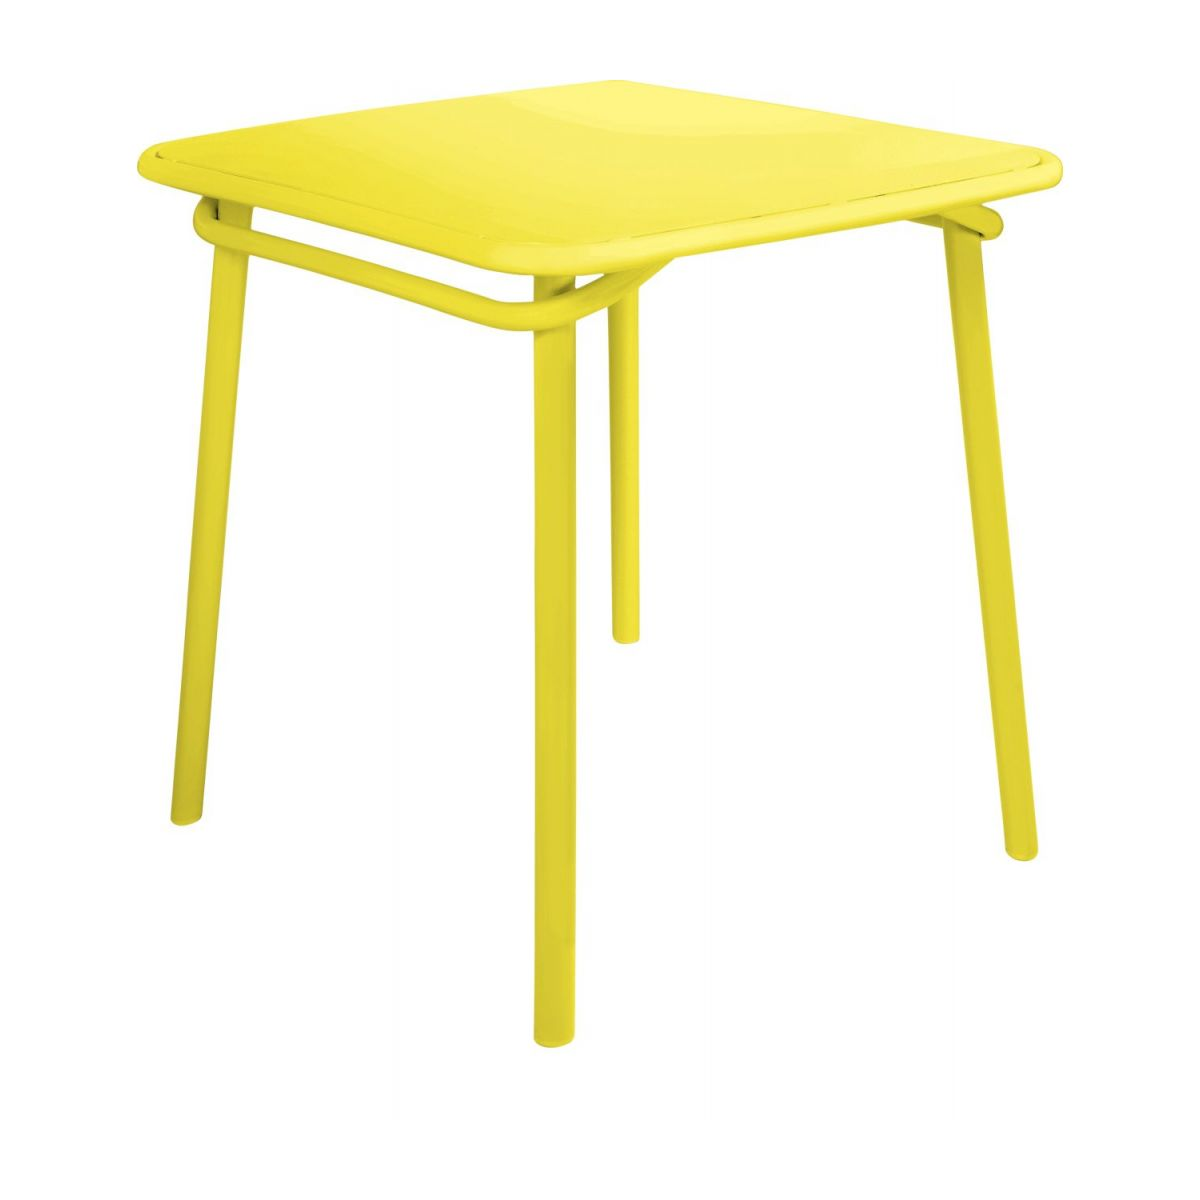 Yellow garden table n°1